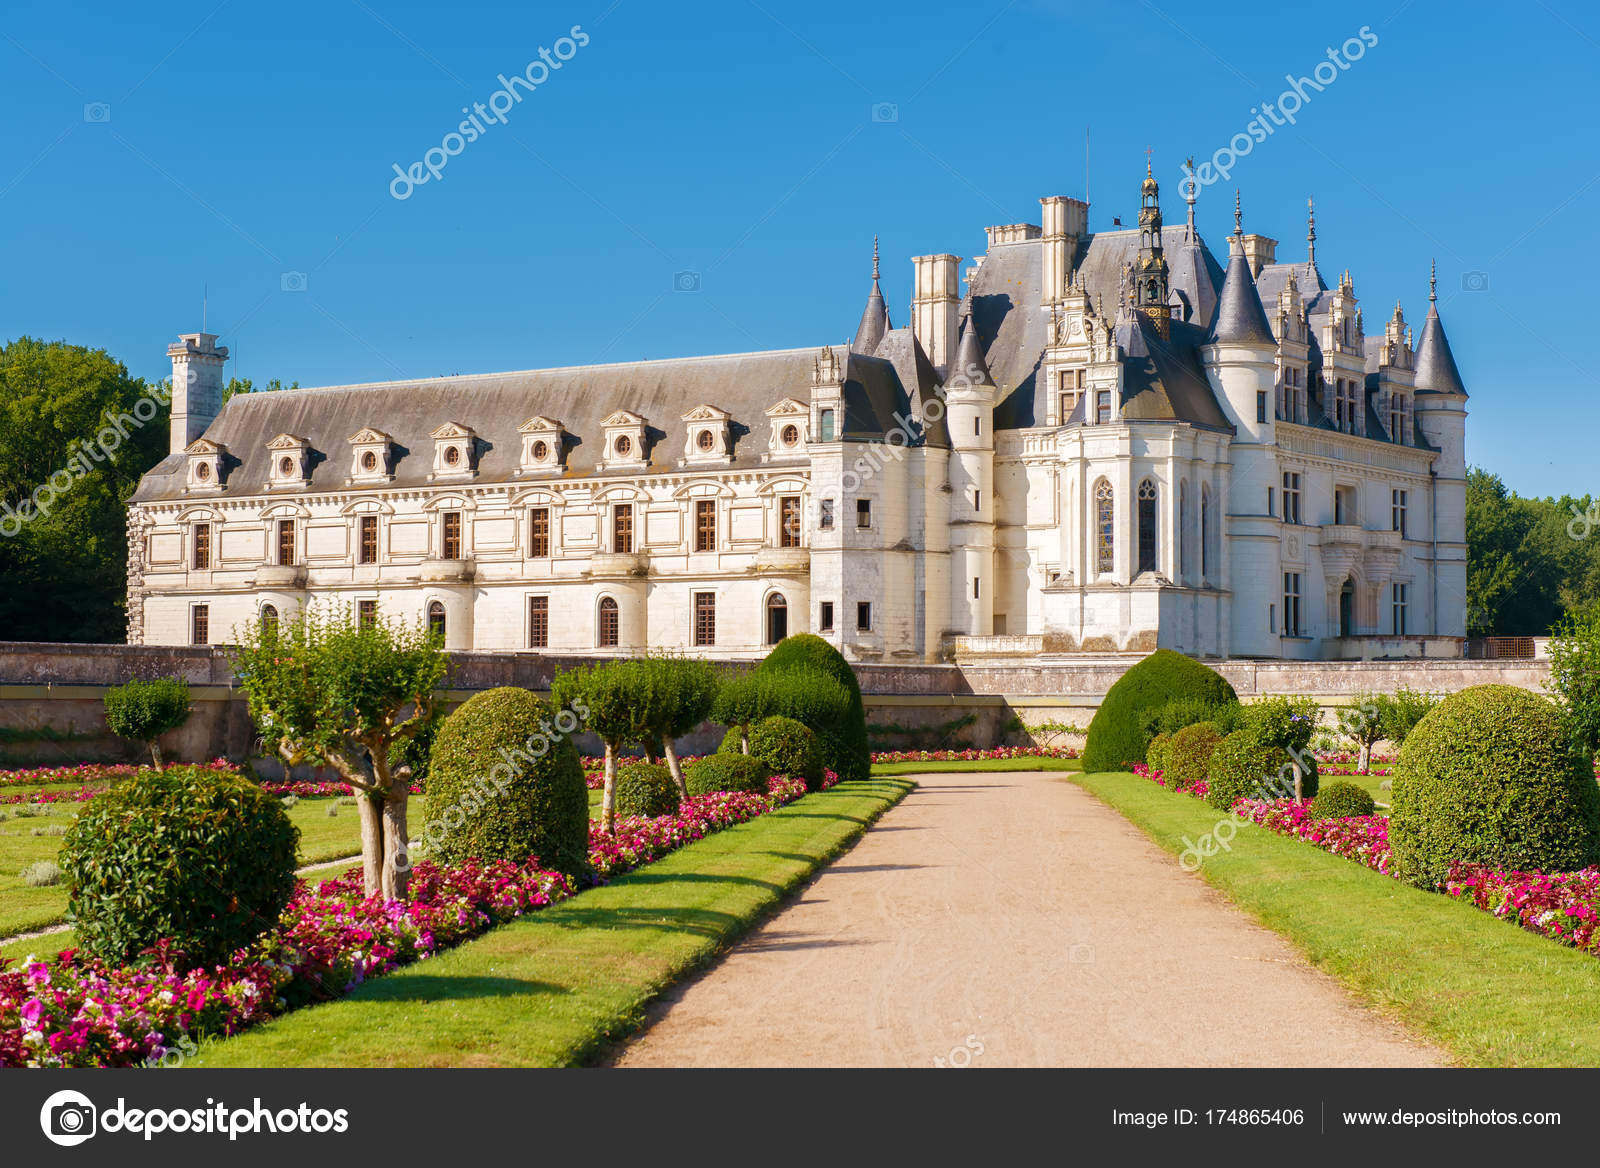 Chenonceau chateau built over the cher river loire valleyfranceon gradient blue sky background